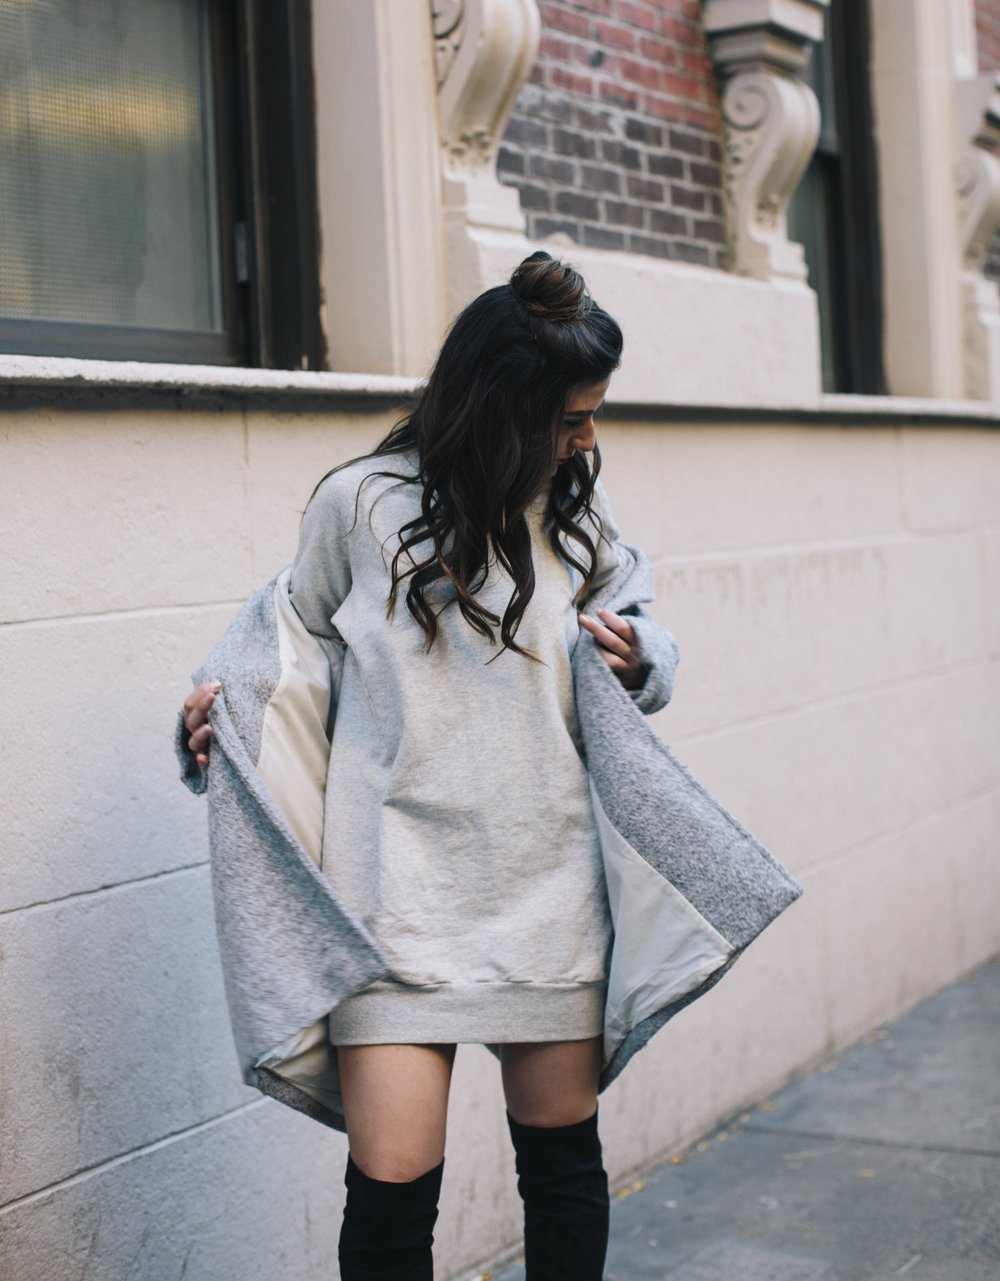 All Grey Look OTK Boots Why I Hate Fashion Week Esther Santer Fashion Blog Louboutins & Love NYC Street Style Blogger Outfit OOTD Trendy Sweatshirt Dress Topknot Coat Women Girl Shoes Shopping Zara Accessories Wear Beauty Monochome Winter Look Clothes.jpg